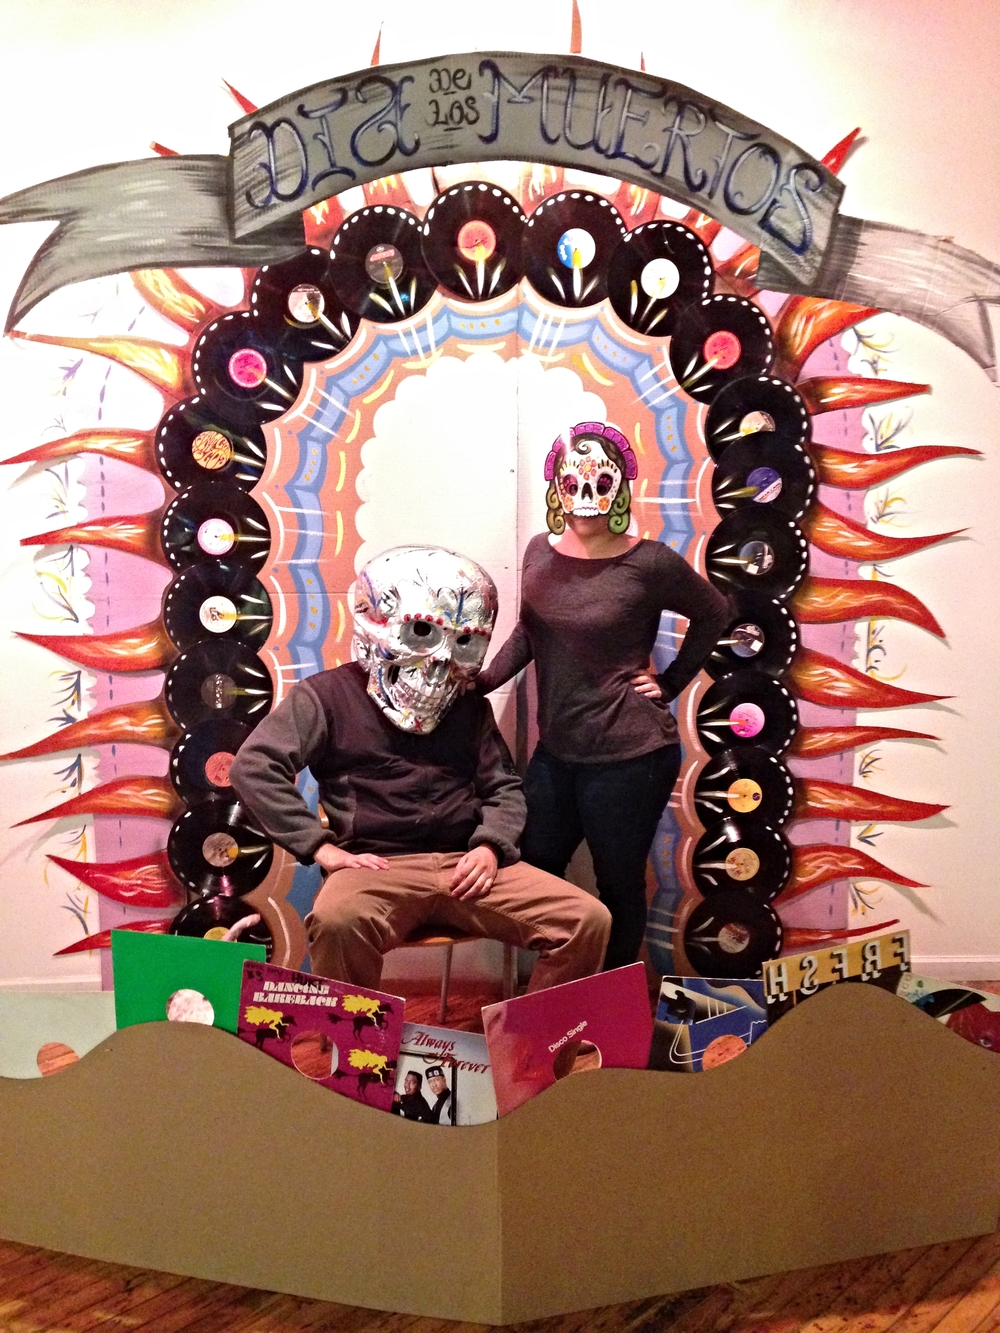 DAY OF THE DEAD CELEBRATION WITH GOZAMOS.COM